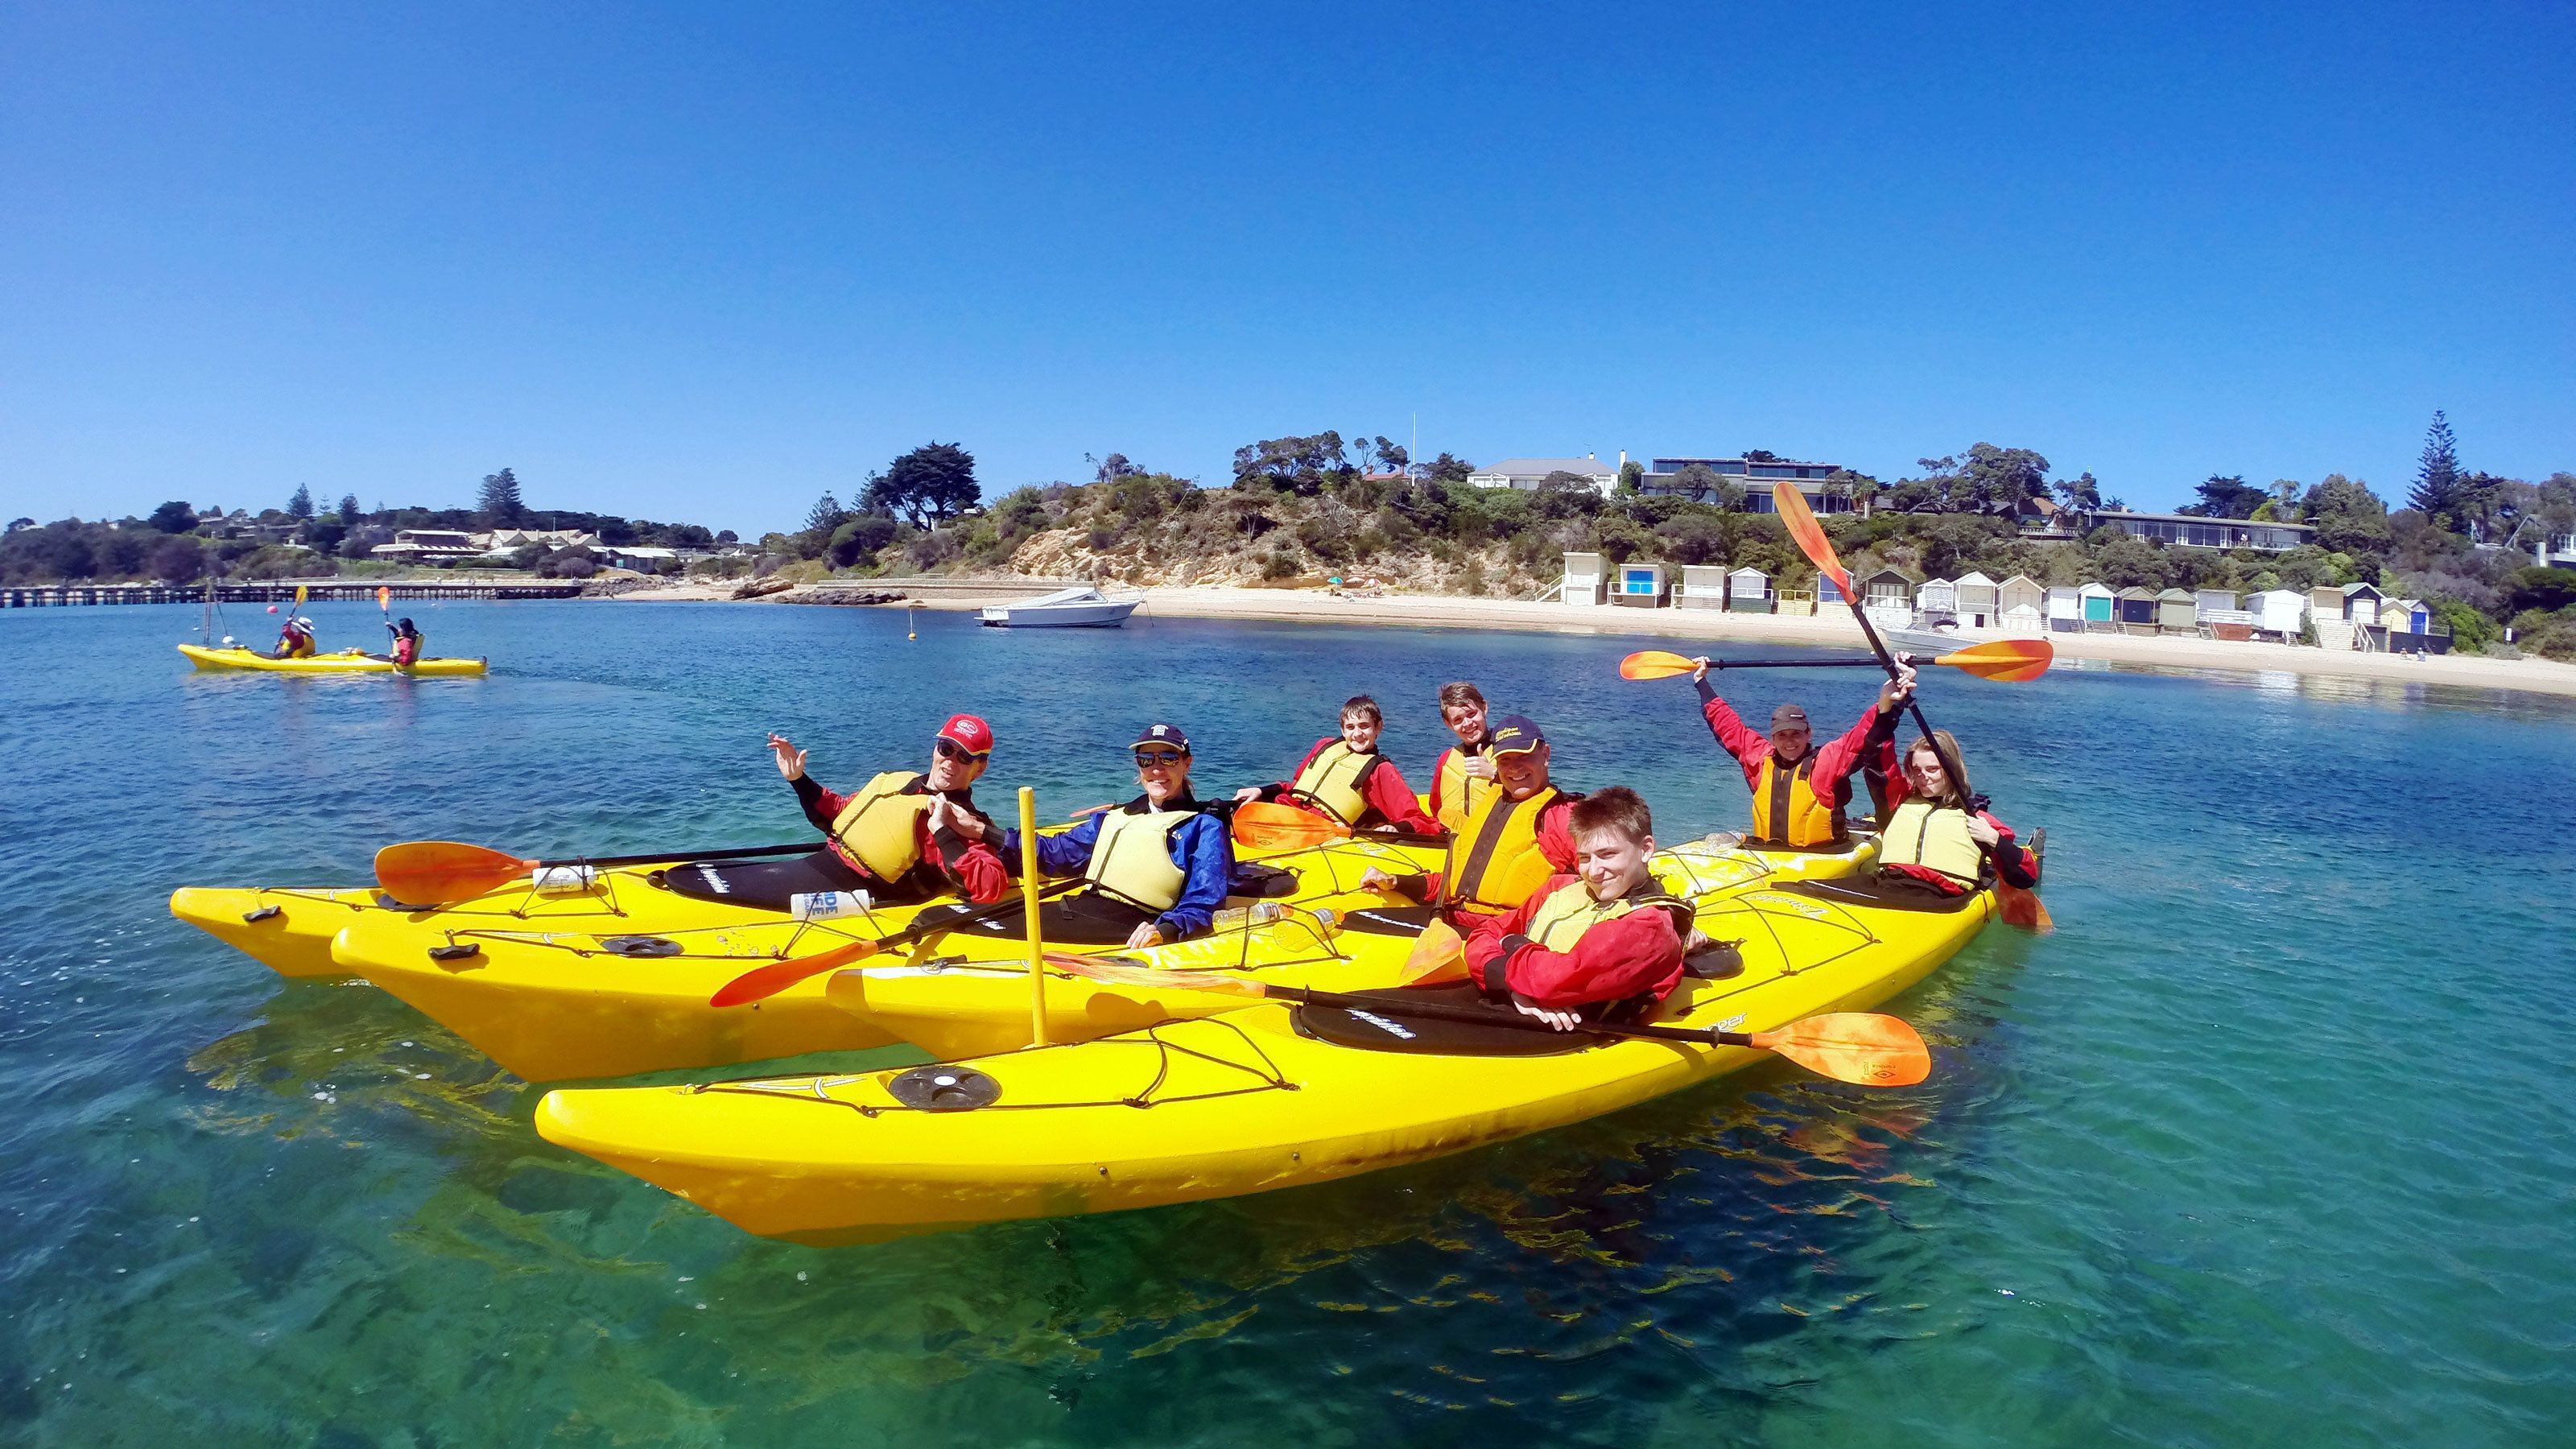 A group of kayakers at Mornington Peninsula